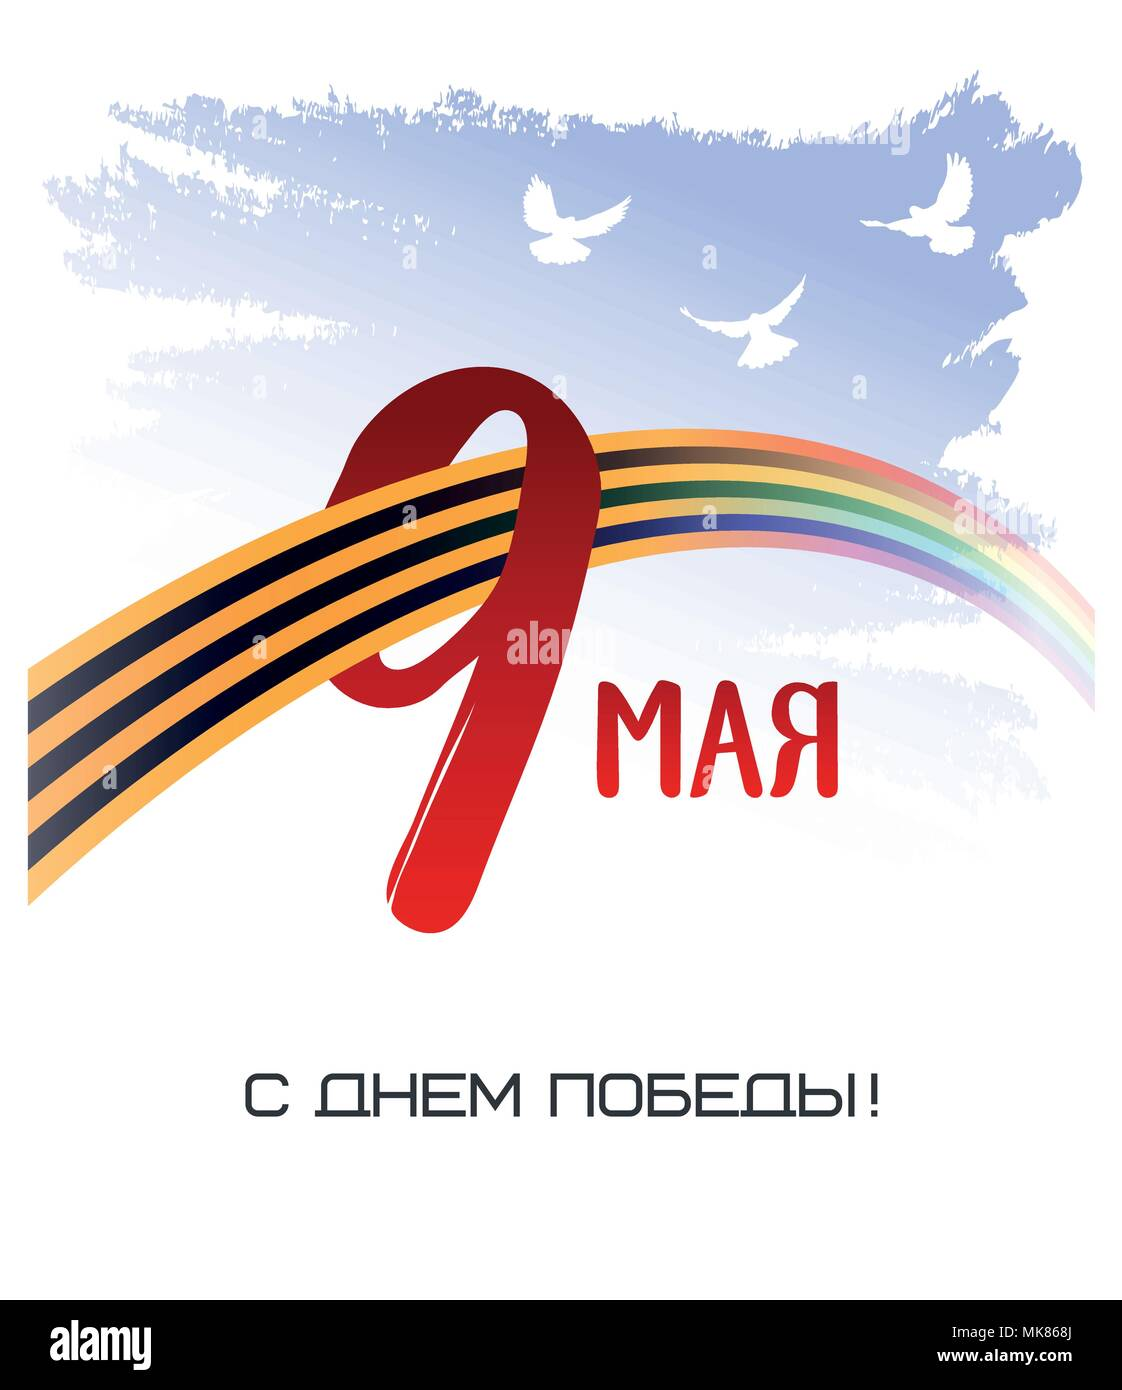 May 9. Happy Victory Day. Greeting card with ribbon, rainbow and doves. Russian language. Vector illustration. - Stock Image